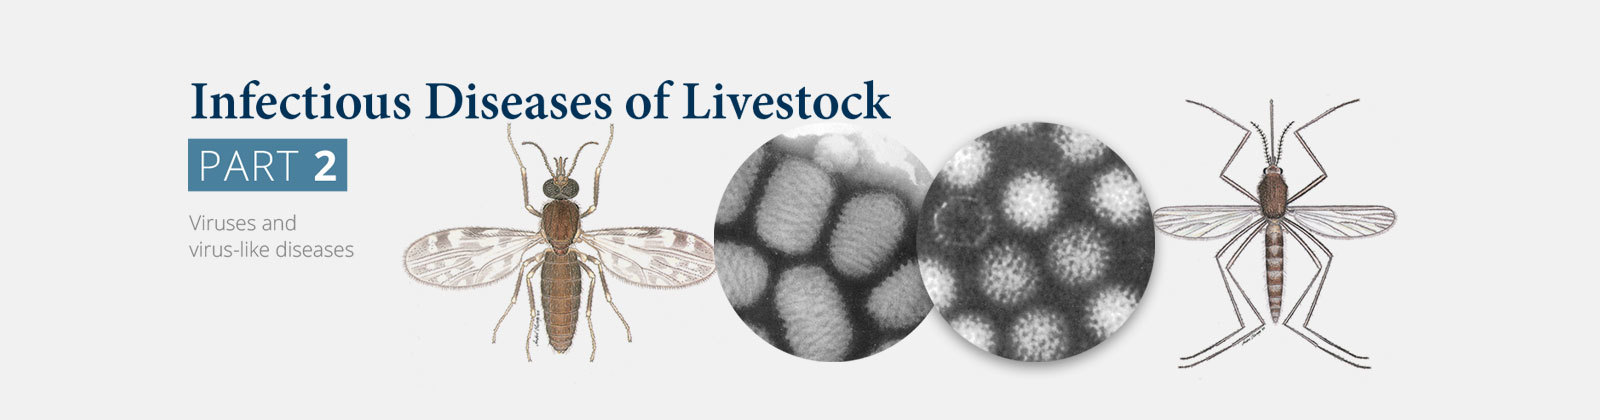 Infectious Diseases of Livestock